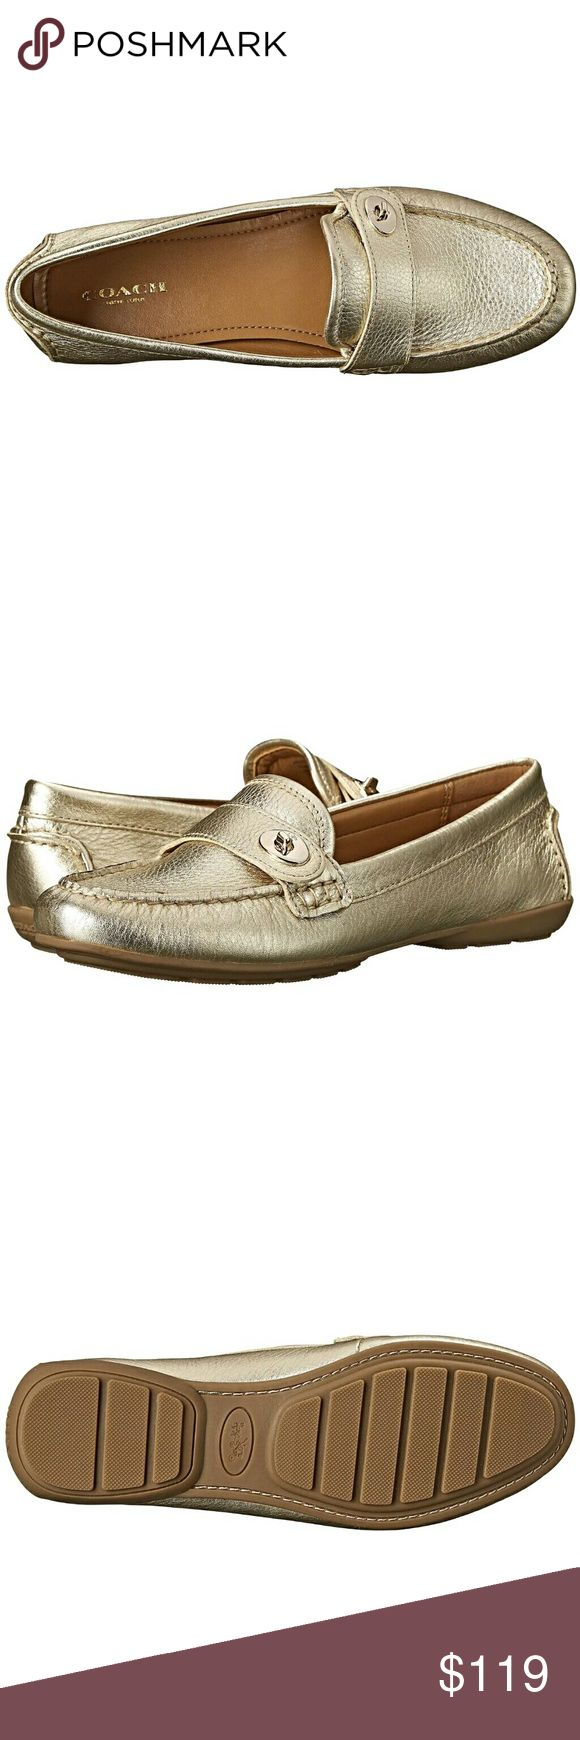 "Coach Gold ""Flash"" Turnlock Driving Loafers NWOB. GOLD. SIZE 8. Did not come with actual tags, but these are new, never worn.  Details in last photo.   Selling because I recieved these as a gift but they were not the ones I had wanted. I just purchased the ones I wanted in gold and therefore don't want 2 of the same color!  ****I DO NOT TRADE****PLEASE DO NOT ASK!!!  Retails $169 but currently ""Sold out"" of this size/color. Coach Shoes Flats & Loafers"